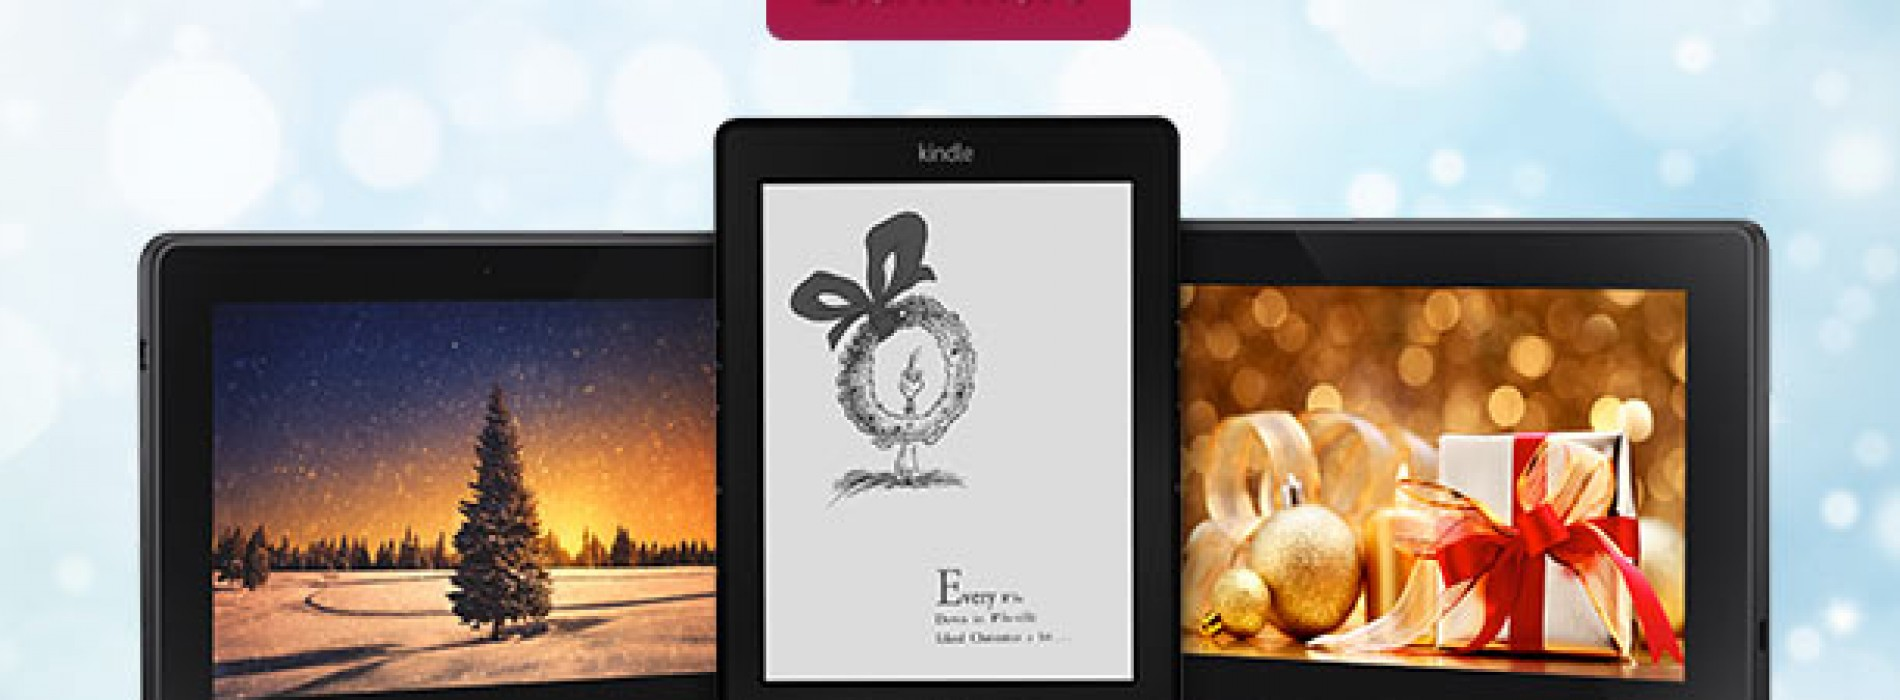 Amazon slashes Kindles by 20% for one day only